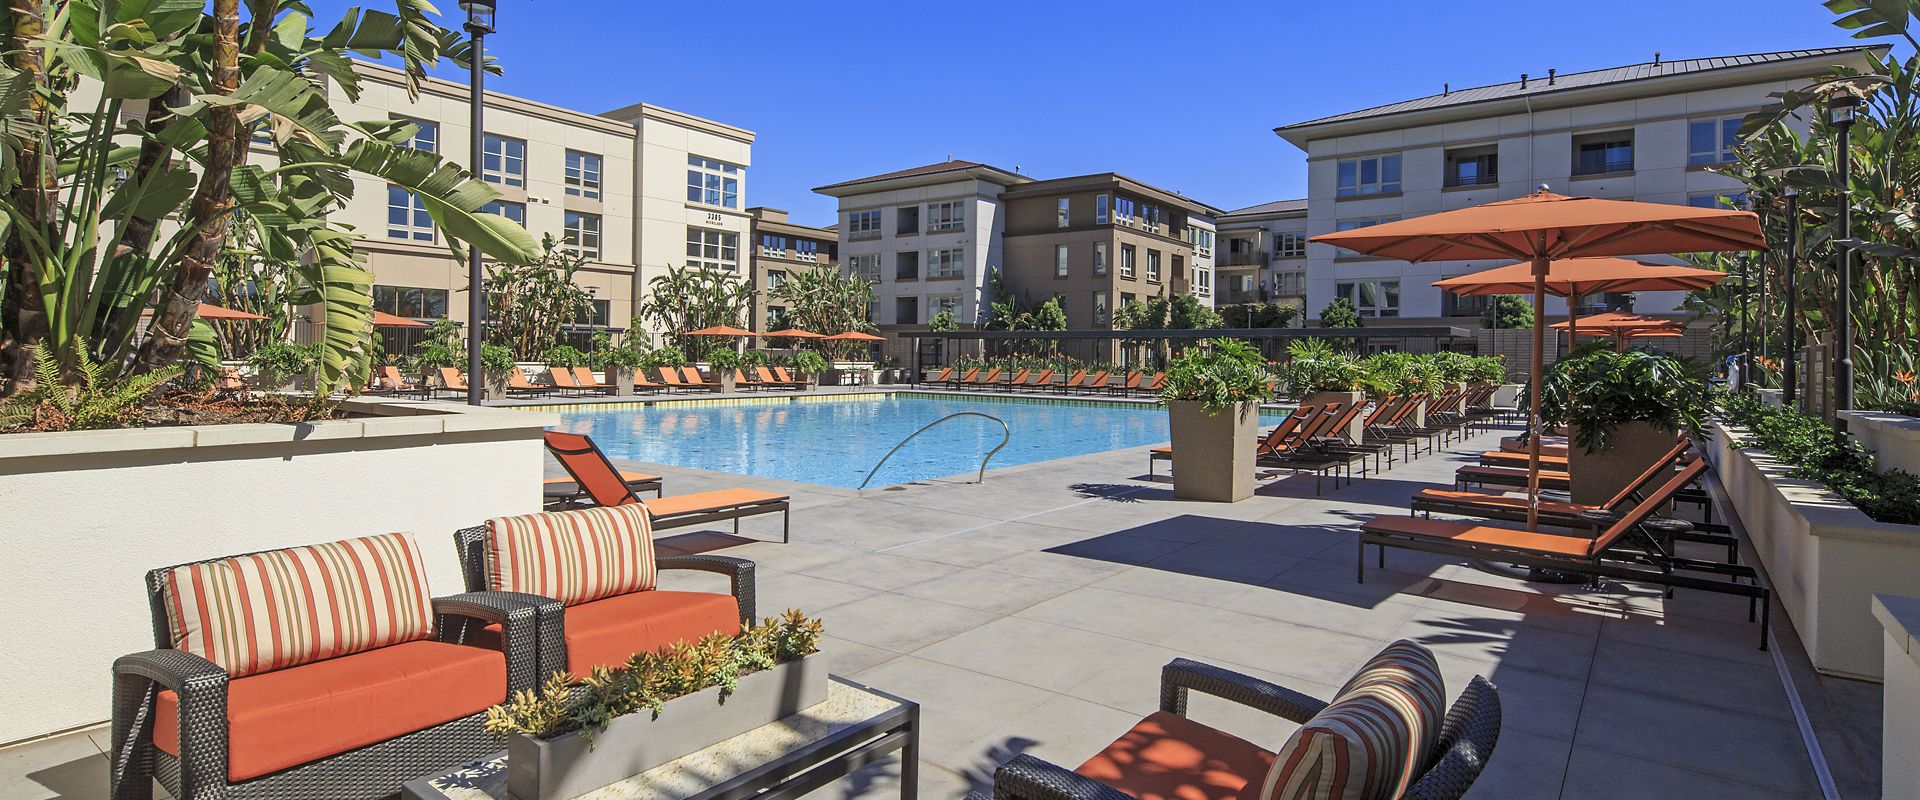 Exterior view of courtyard details at Park Place Apartment Homes in Irvine, CA.